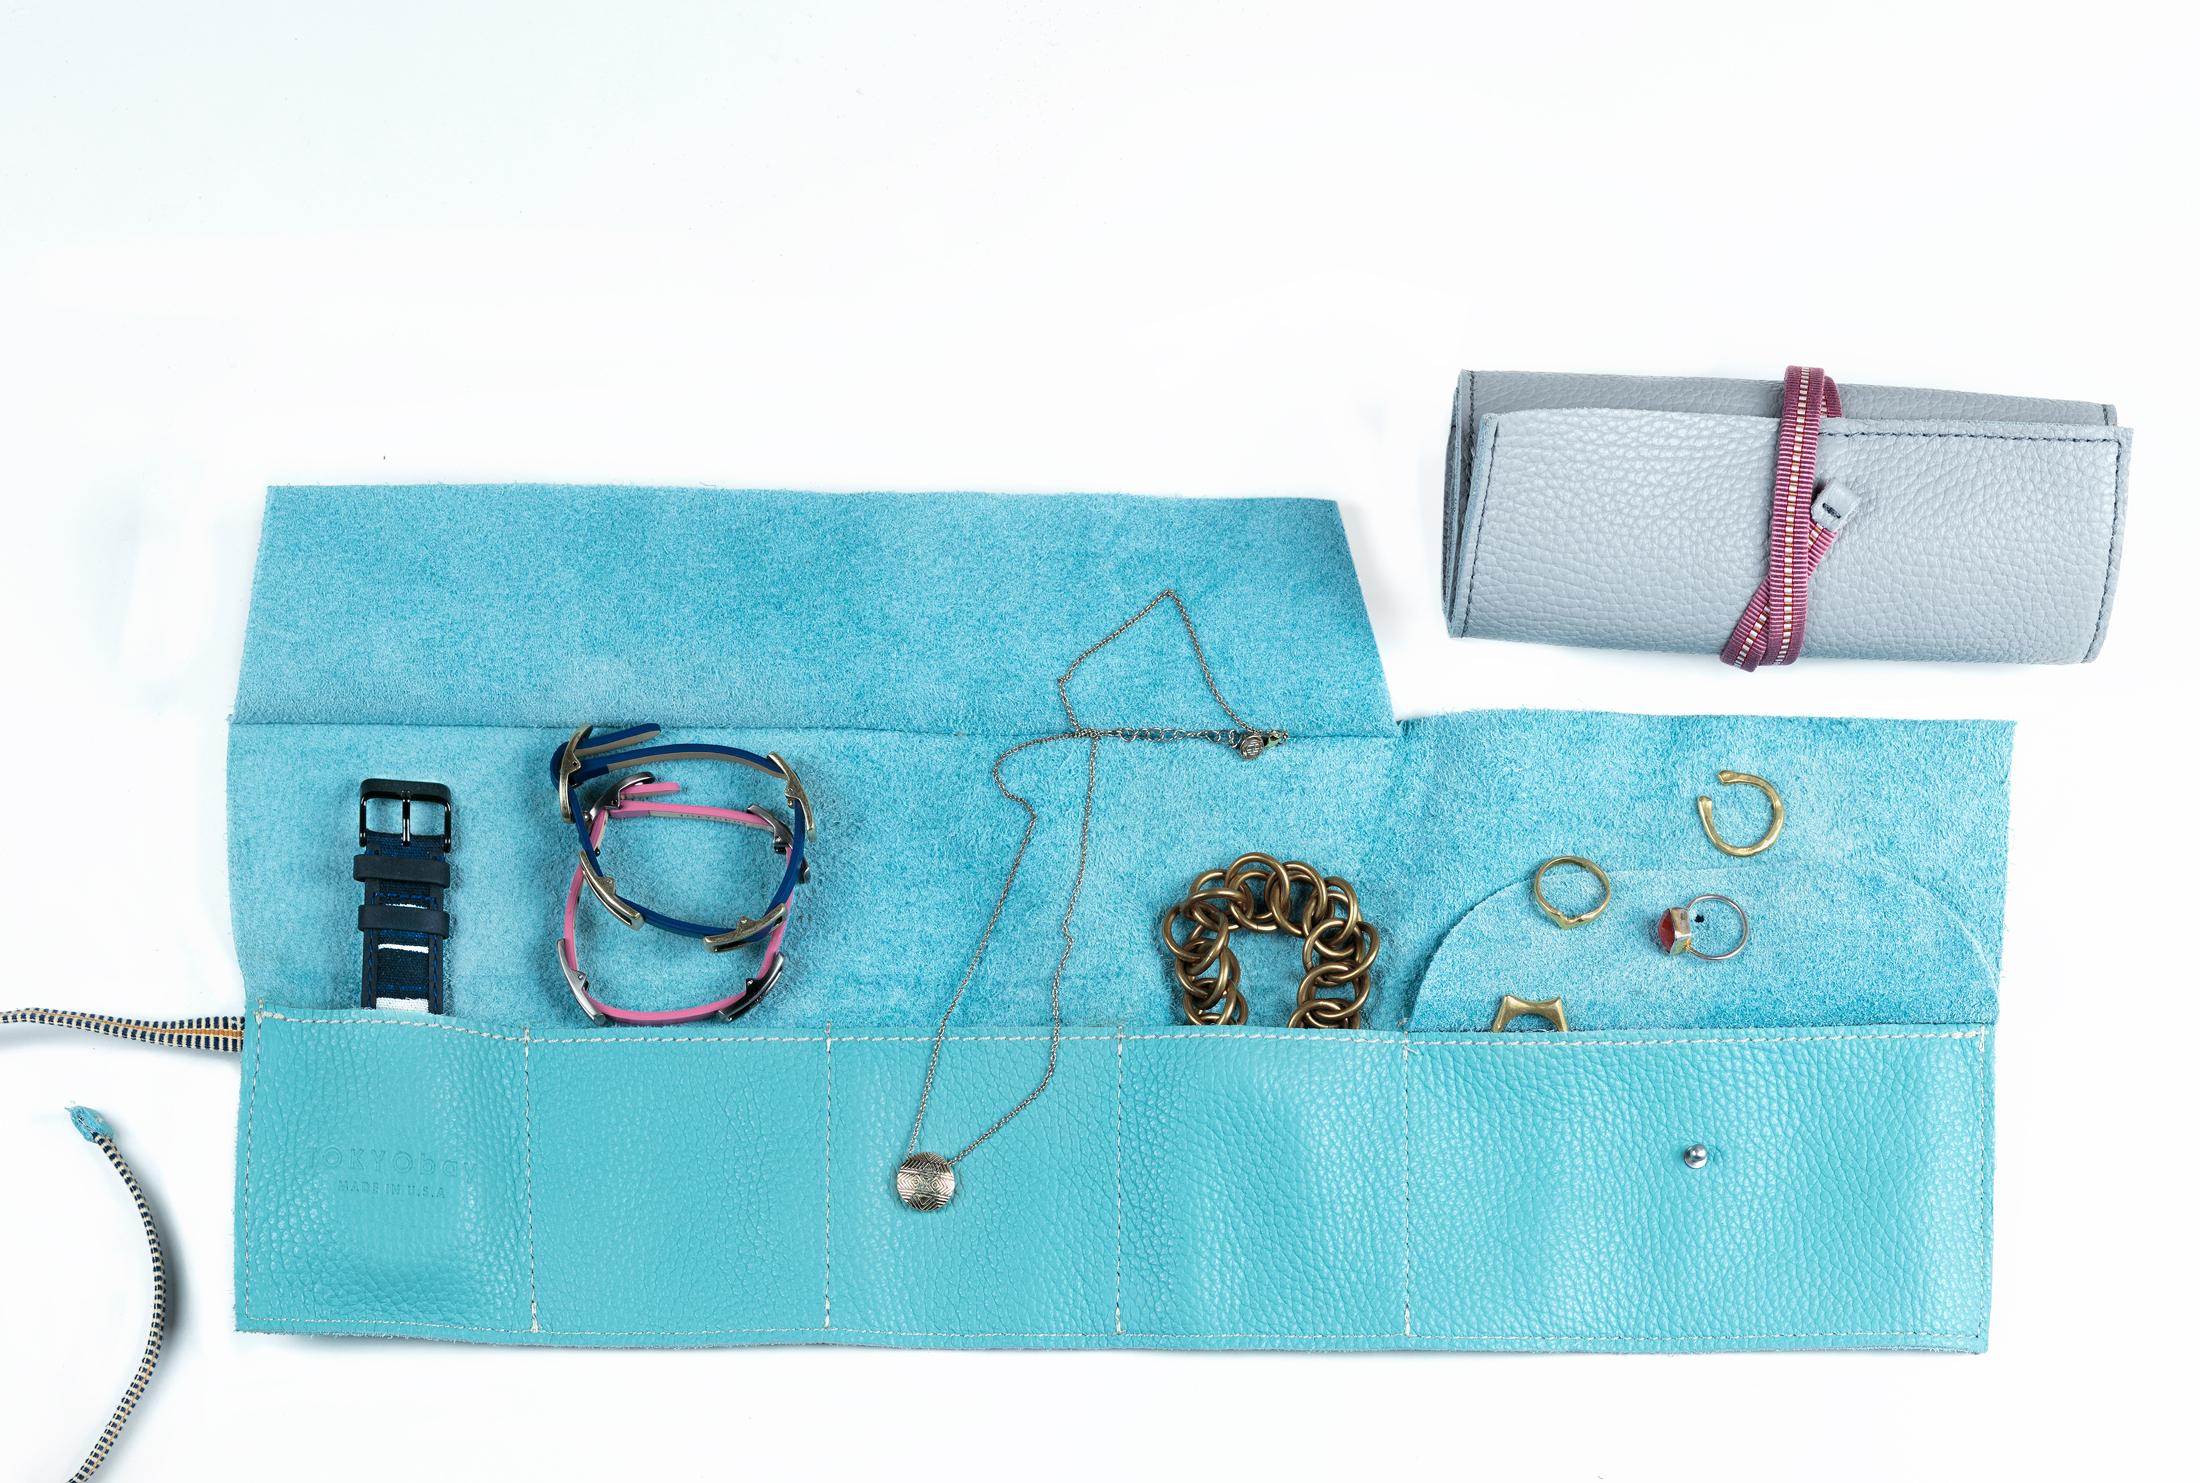 Jewelry-Roll-with-Objects_Full-Size-web.jpg